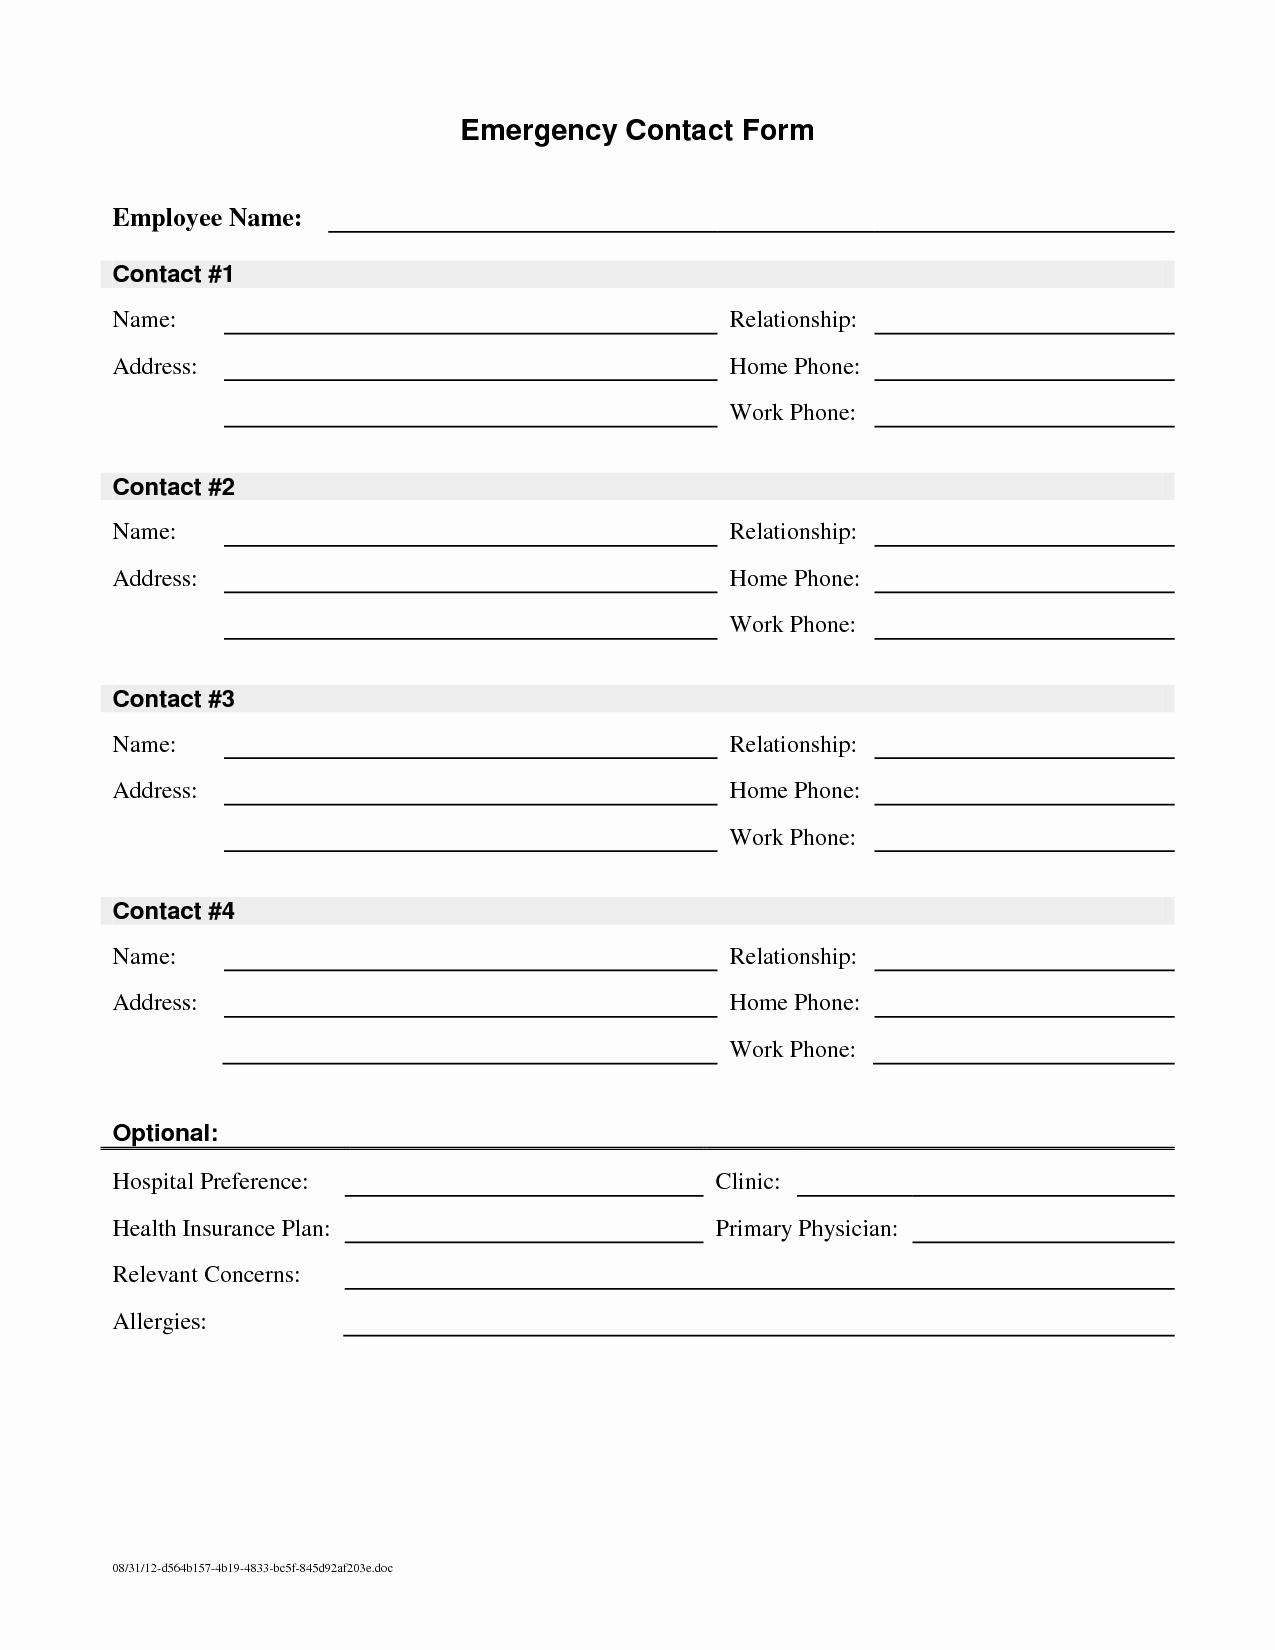 Employee Contact List Template Beautiful Employee Emergency Contact Printable form to Pin